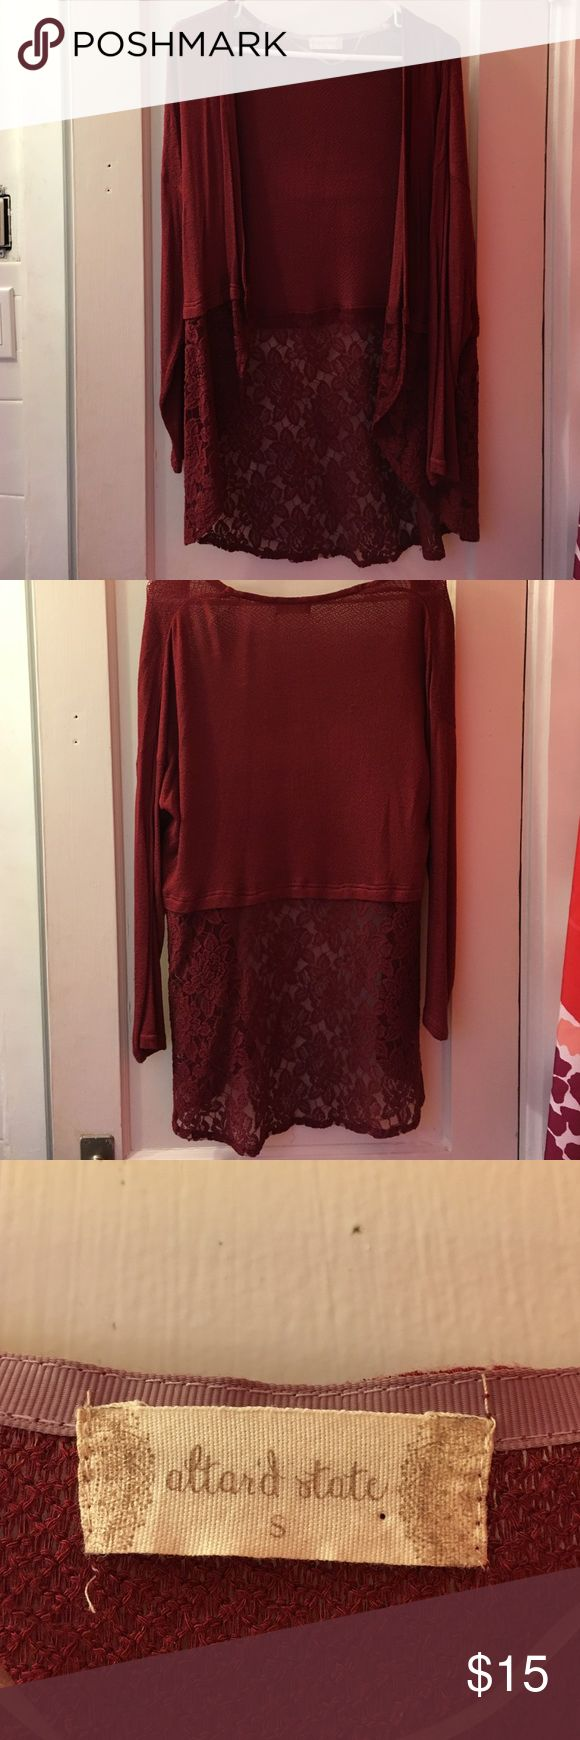 altar'd state maroon cardigan altar'd state maroon cardigan with lace detail on the bottom Altar'd State Sweaters Cardigans